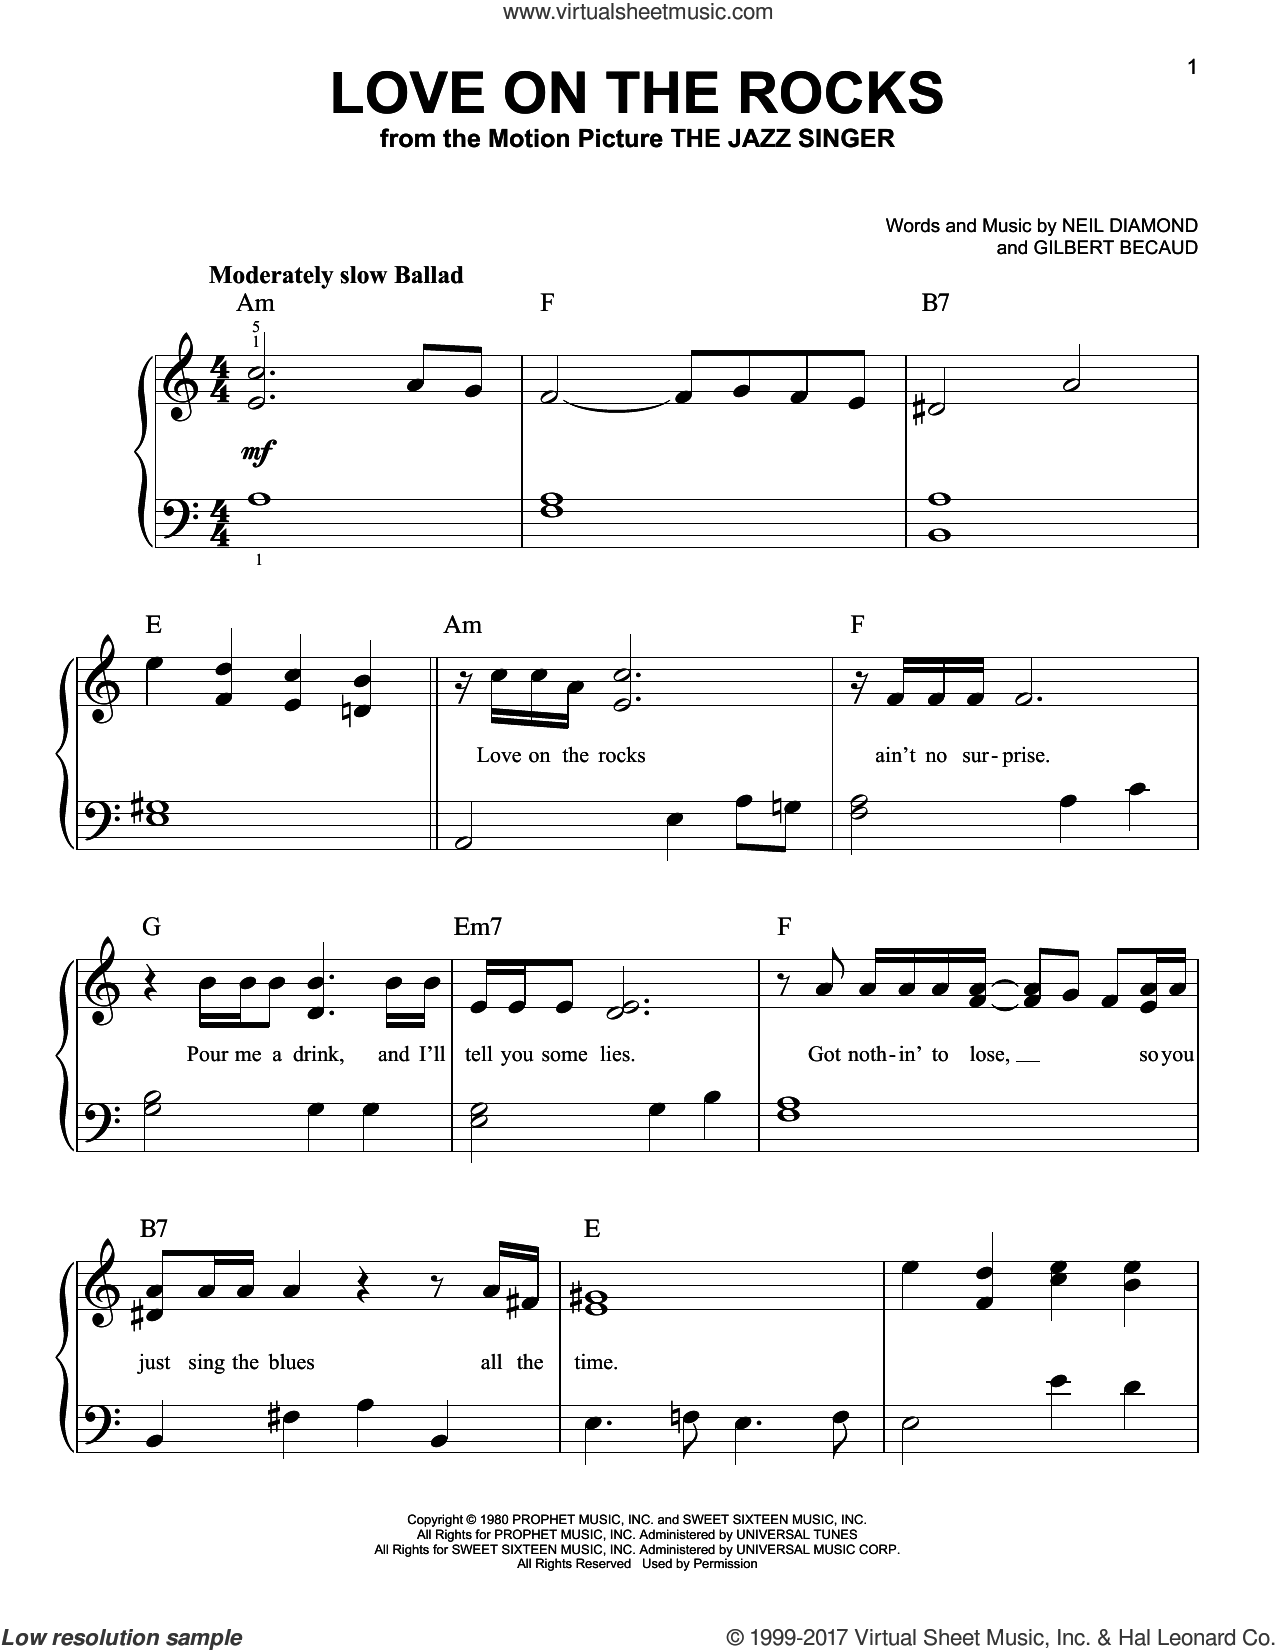 Love On The Rocks sheet music for piano solo by Neil Diamond and Gilbert Becaud, easy. Score Image Preview.